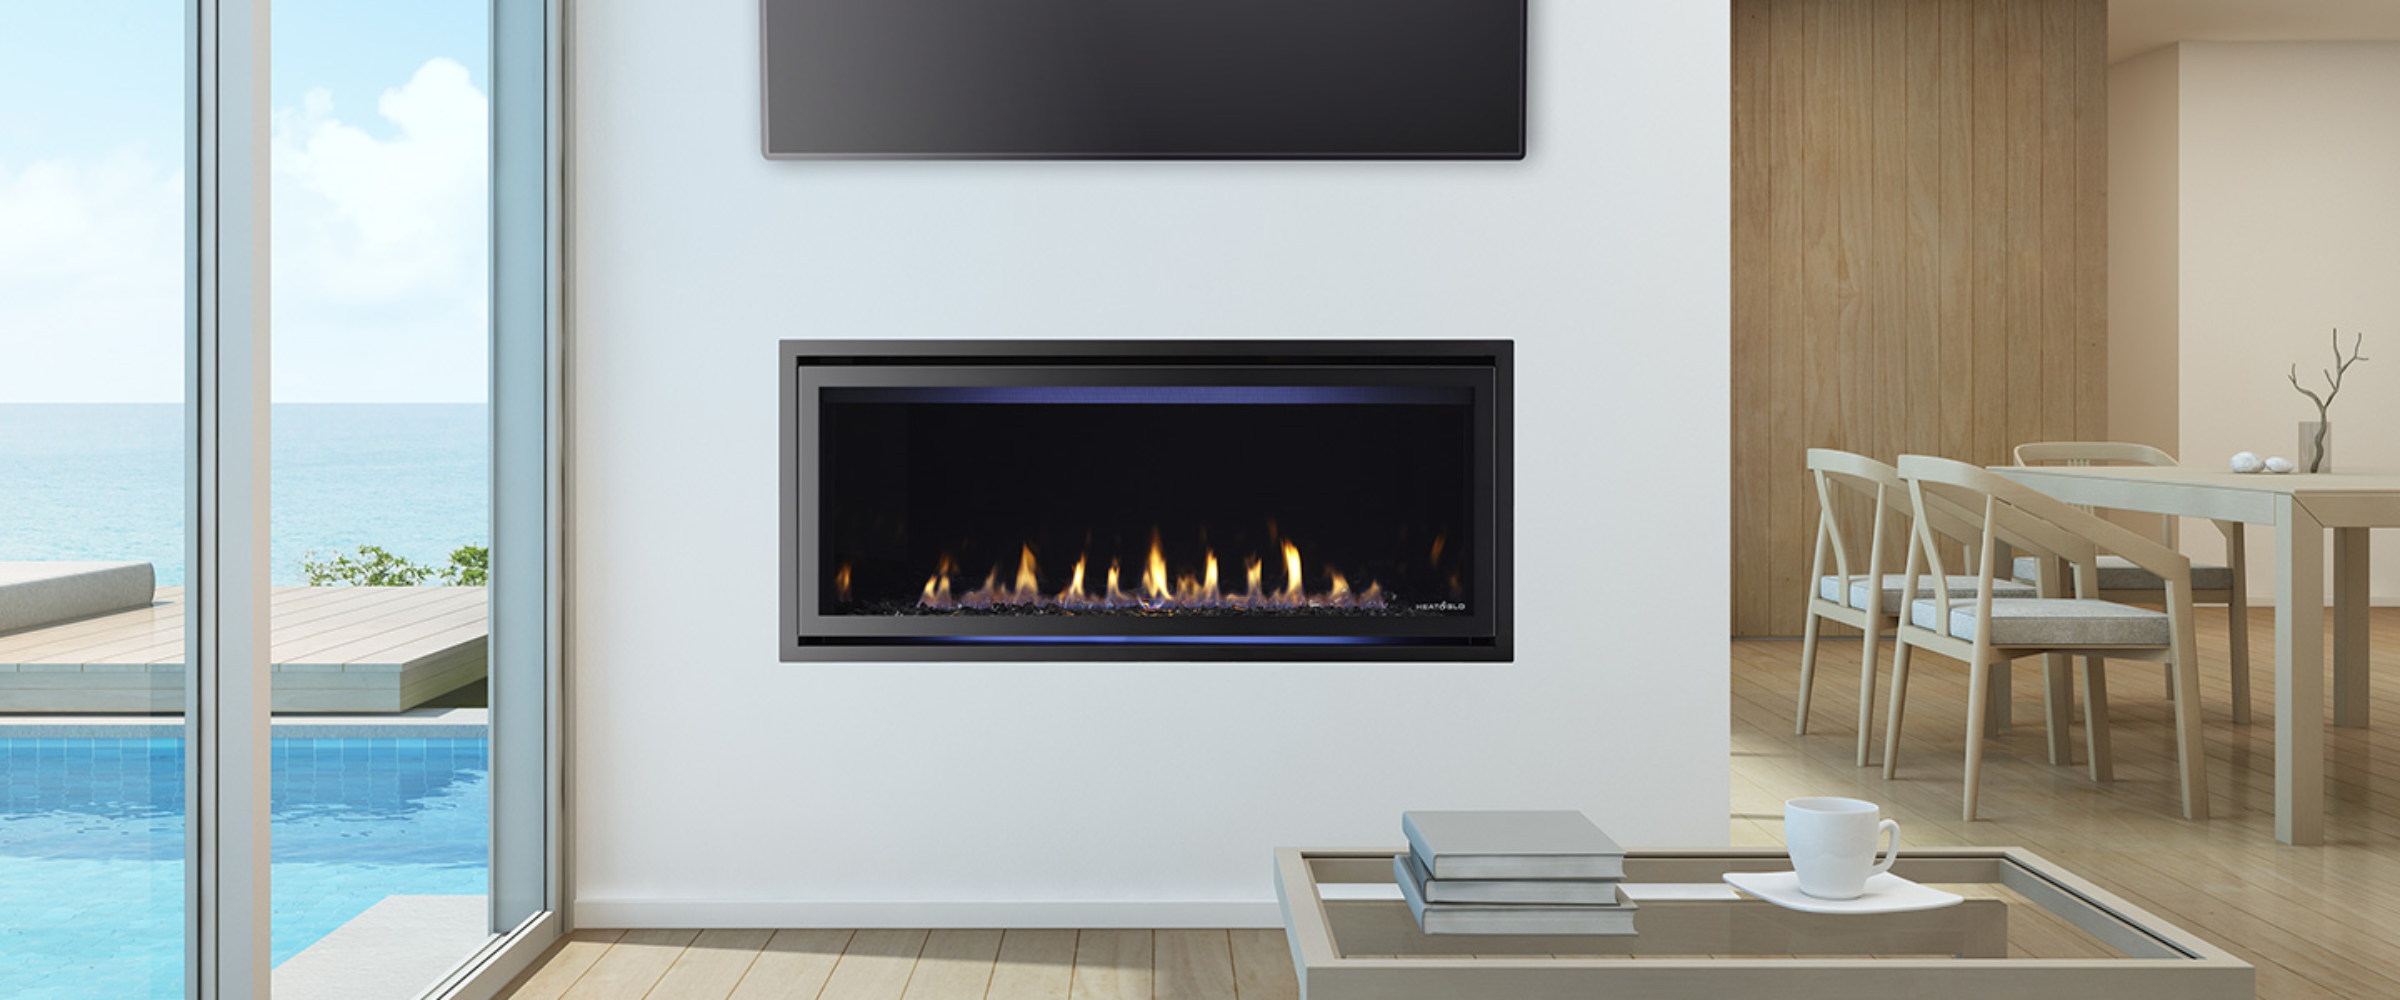 Modern Fireplaces Seattle Wa Portland Or Fireside Home Solutions